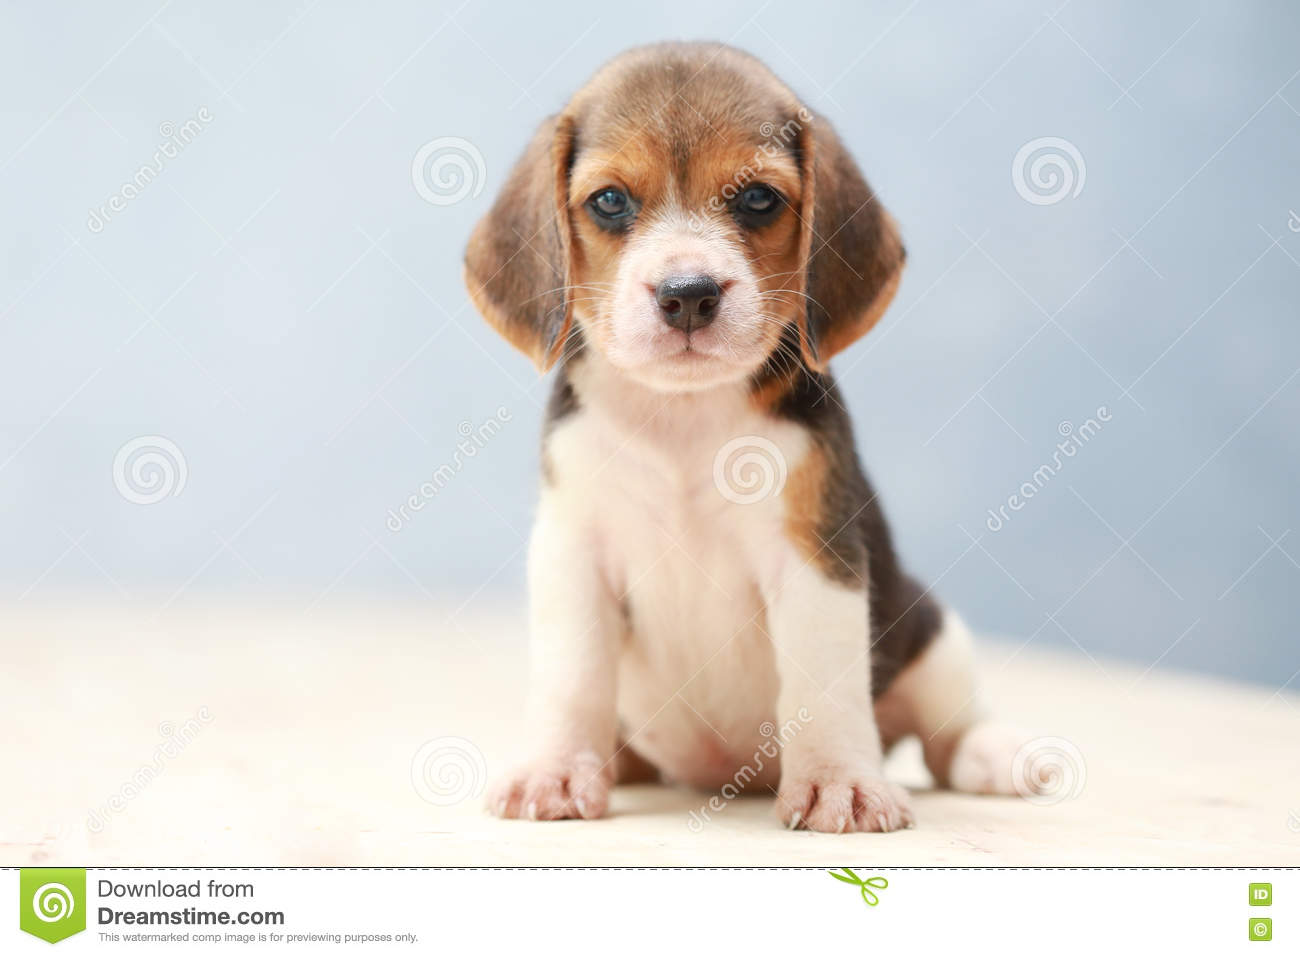 15 202 Cute Beagle Puppy Dog Photos Free Royalty Free Stock Photos From Dreamstime